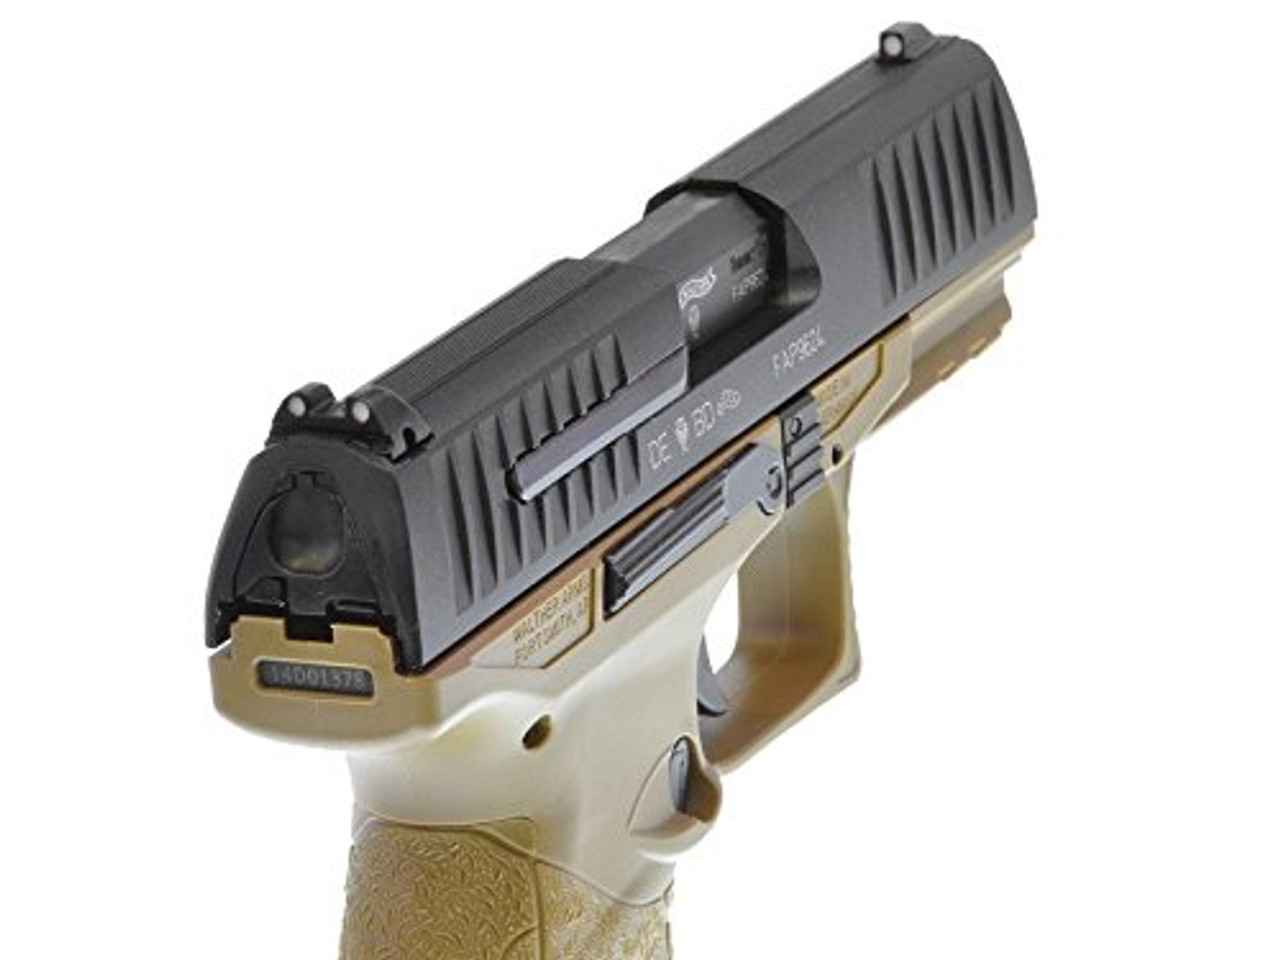 Back right of Walther / StarkArms PPQ M2 Tan GBB Airsoft gun